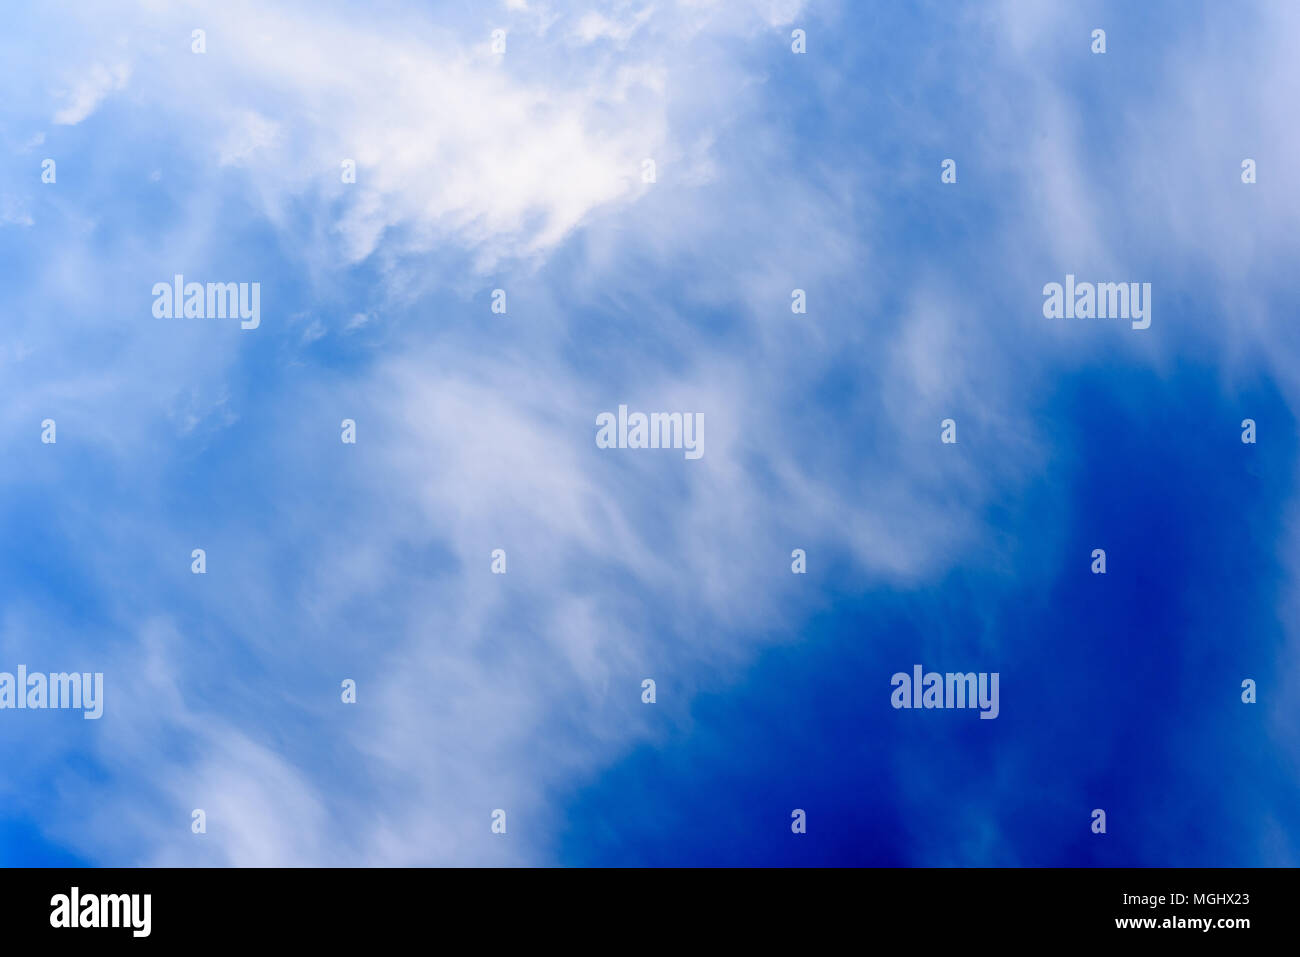 Wispy white clouds and turbulent sky taken during a winter's day with crisp blue areas of natural skyline Stock Photo